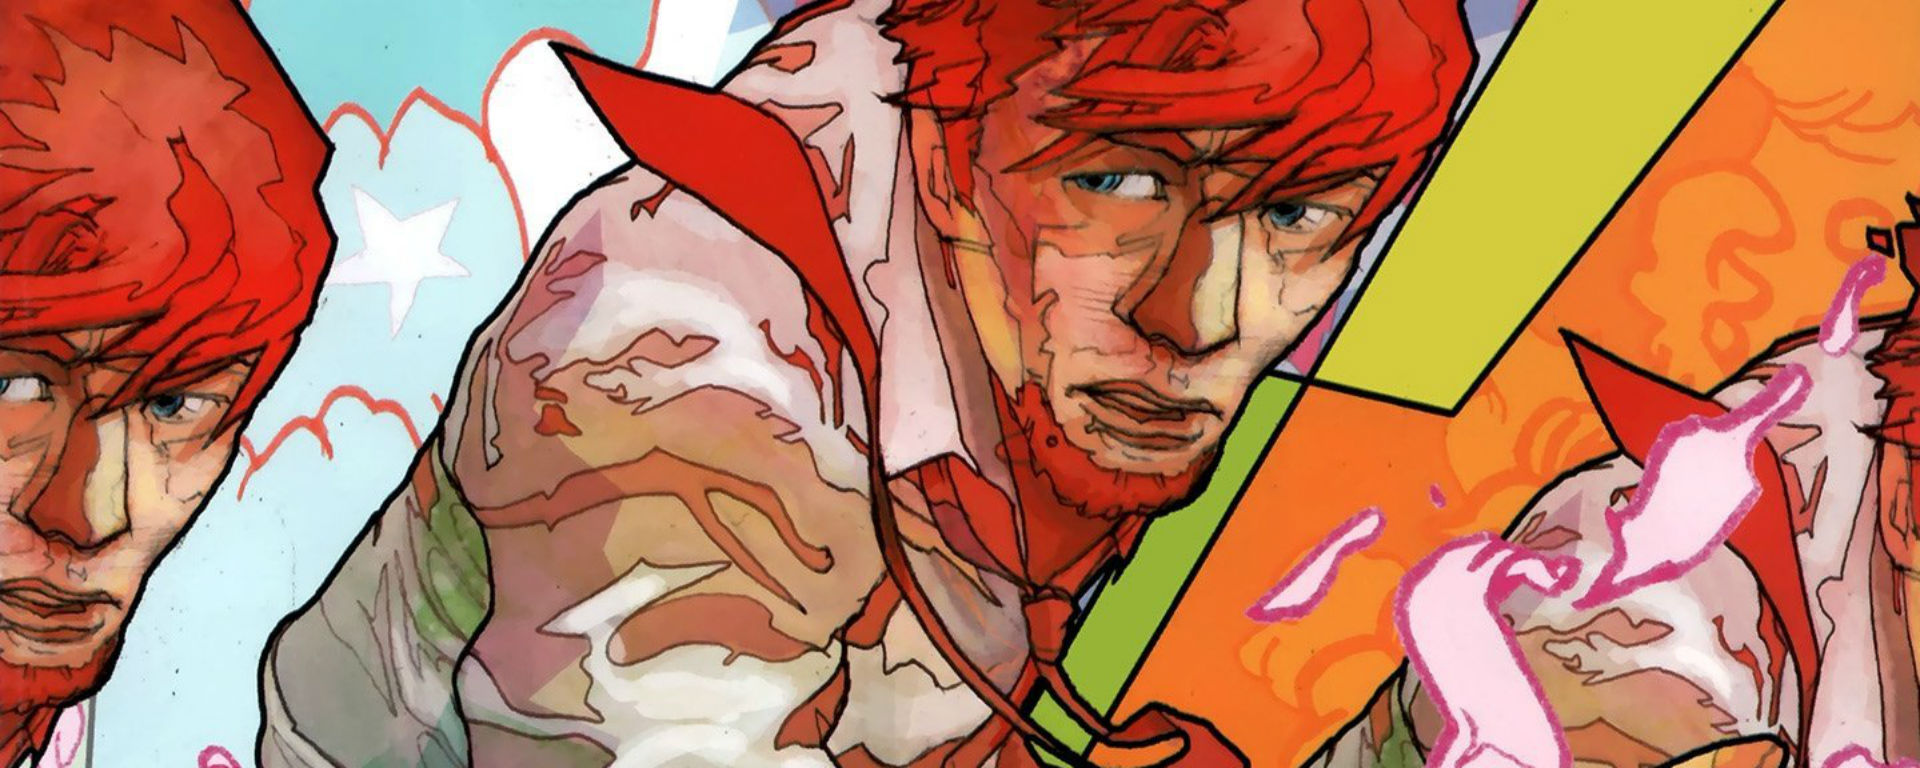 image comics infinite vacation 4 review feature image